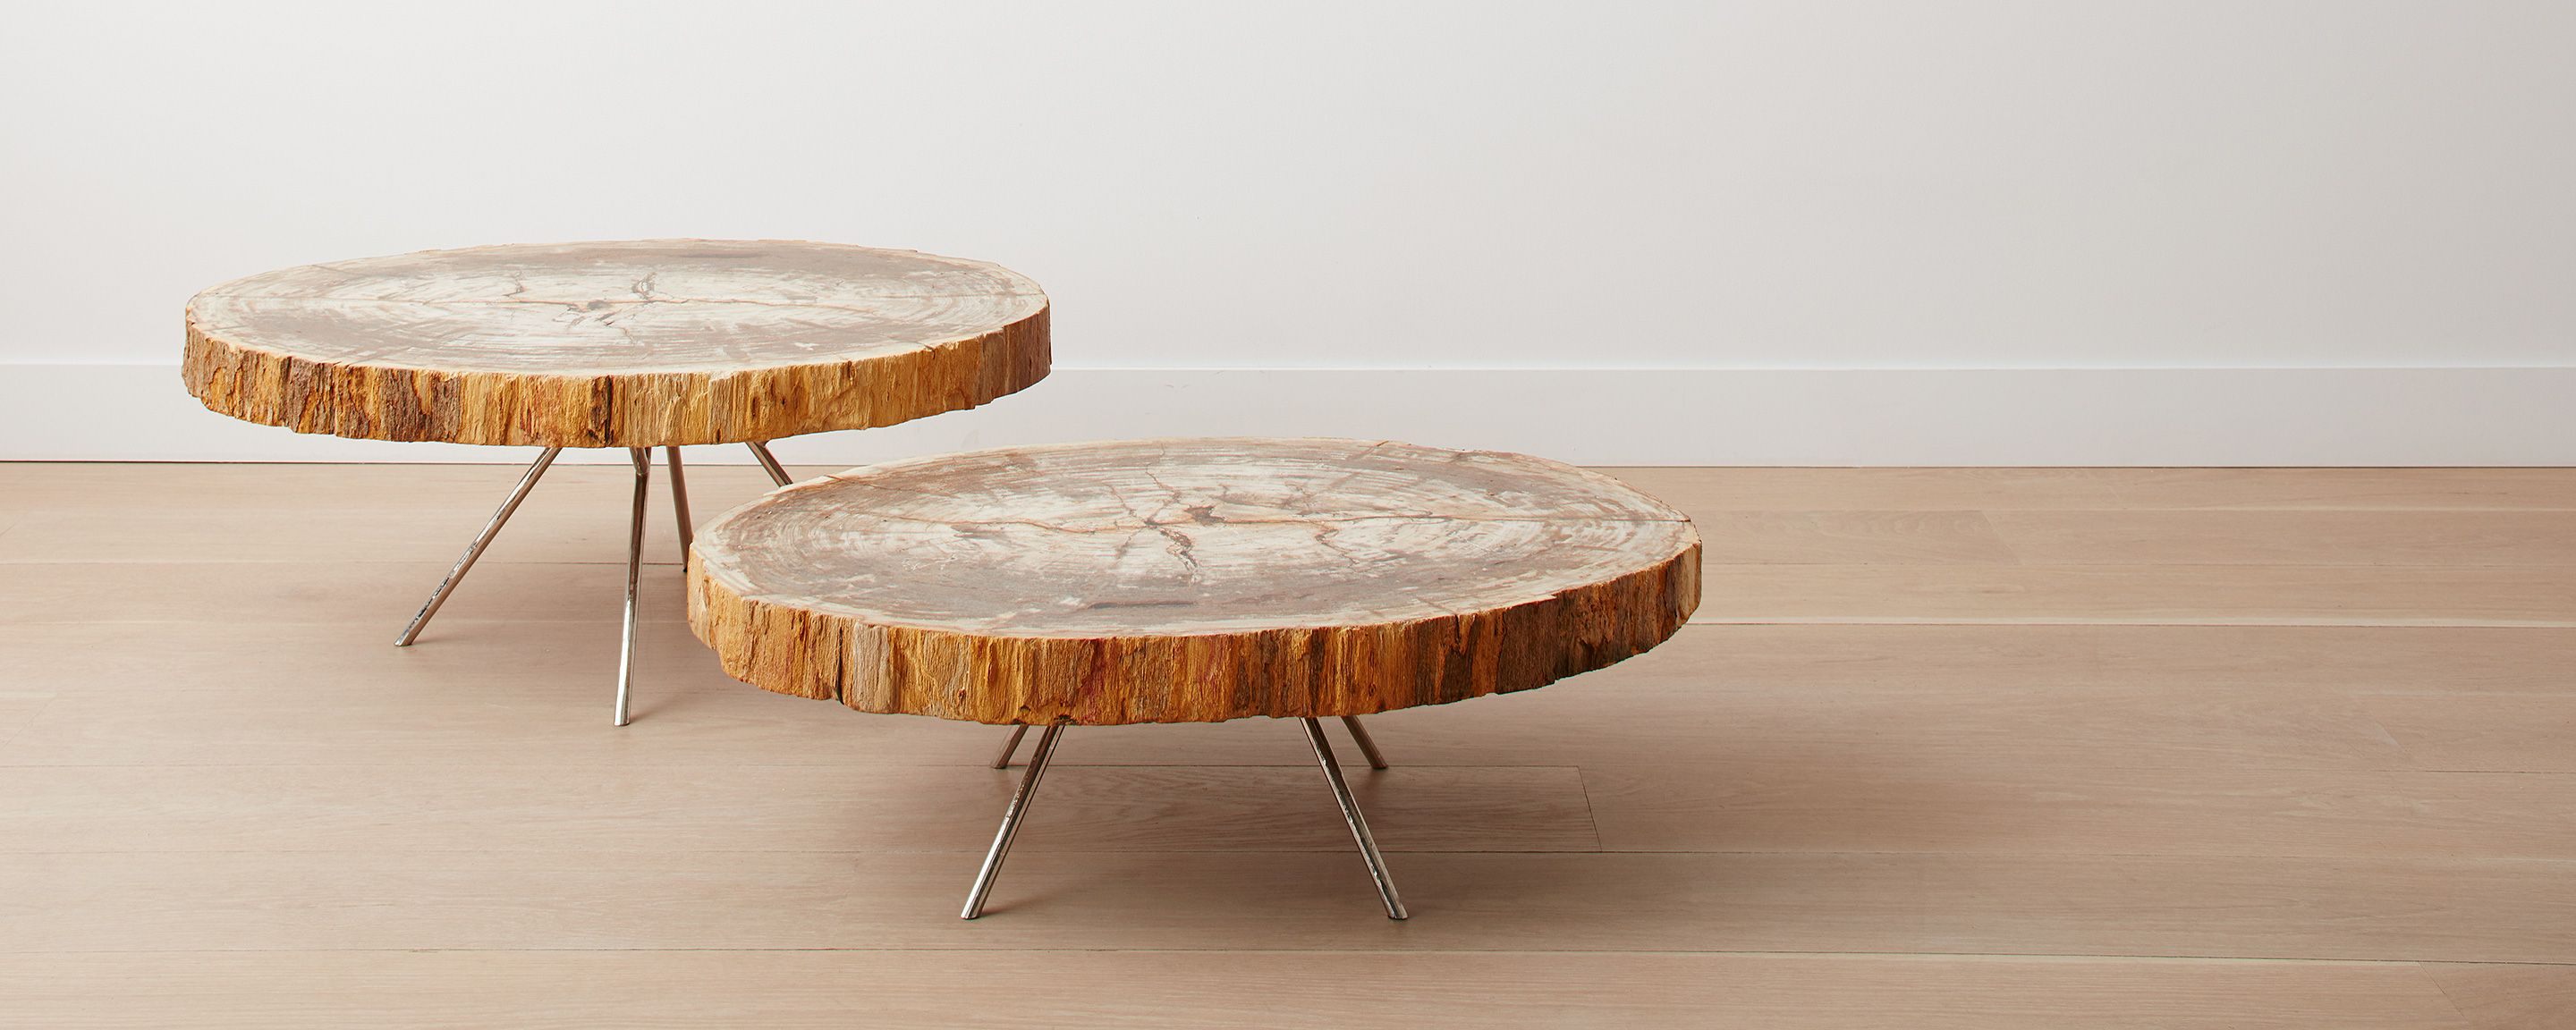 Raw edge polished petrified wood nesting tables with distressed